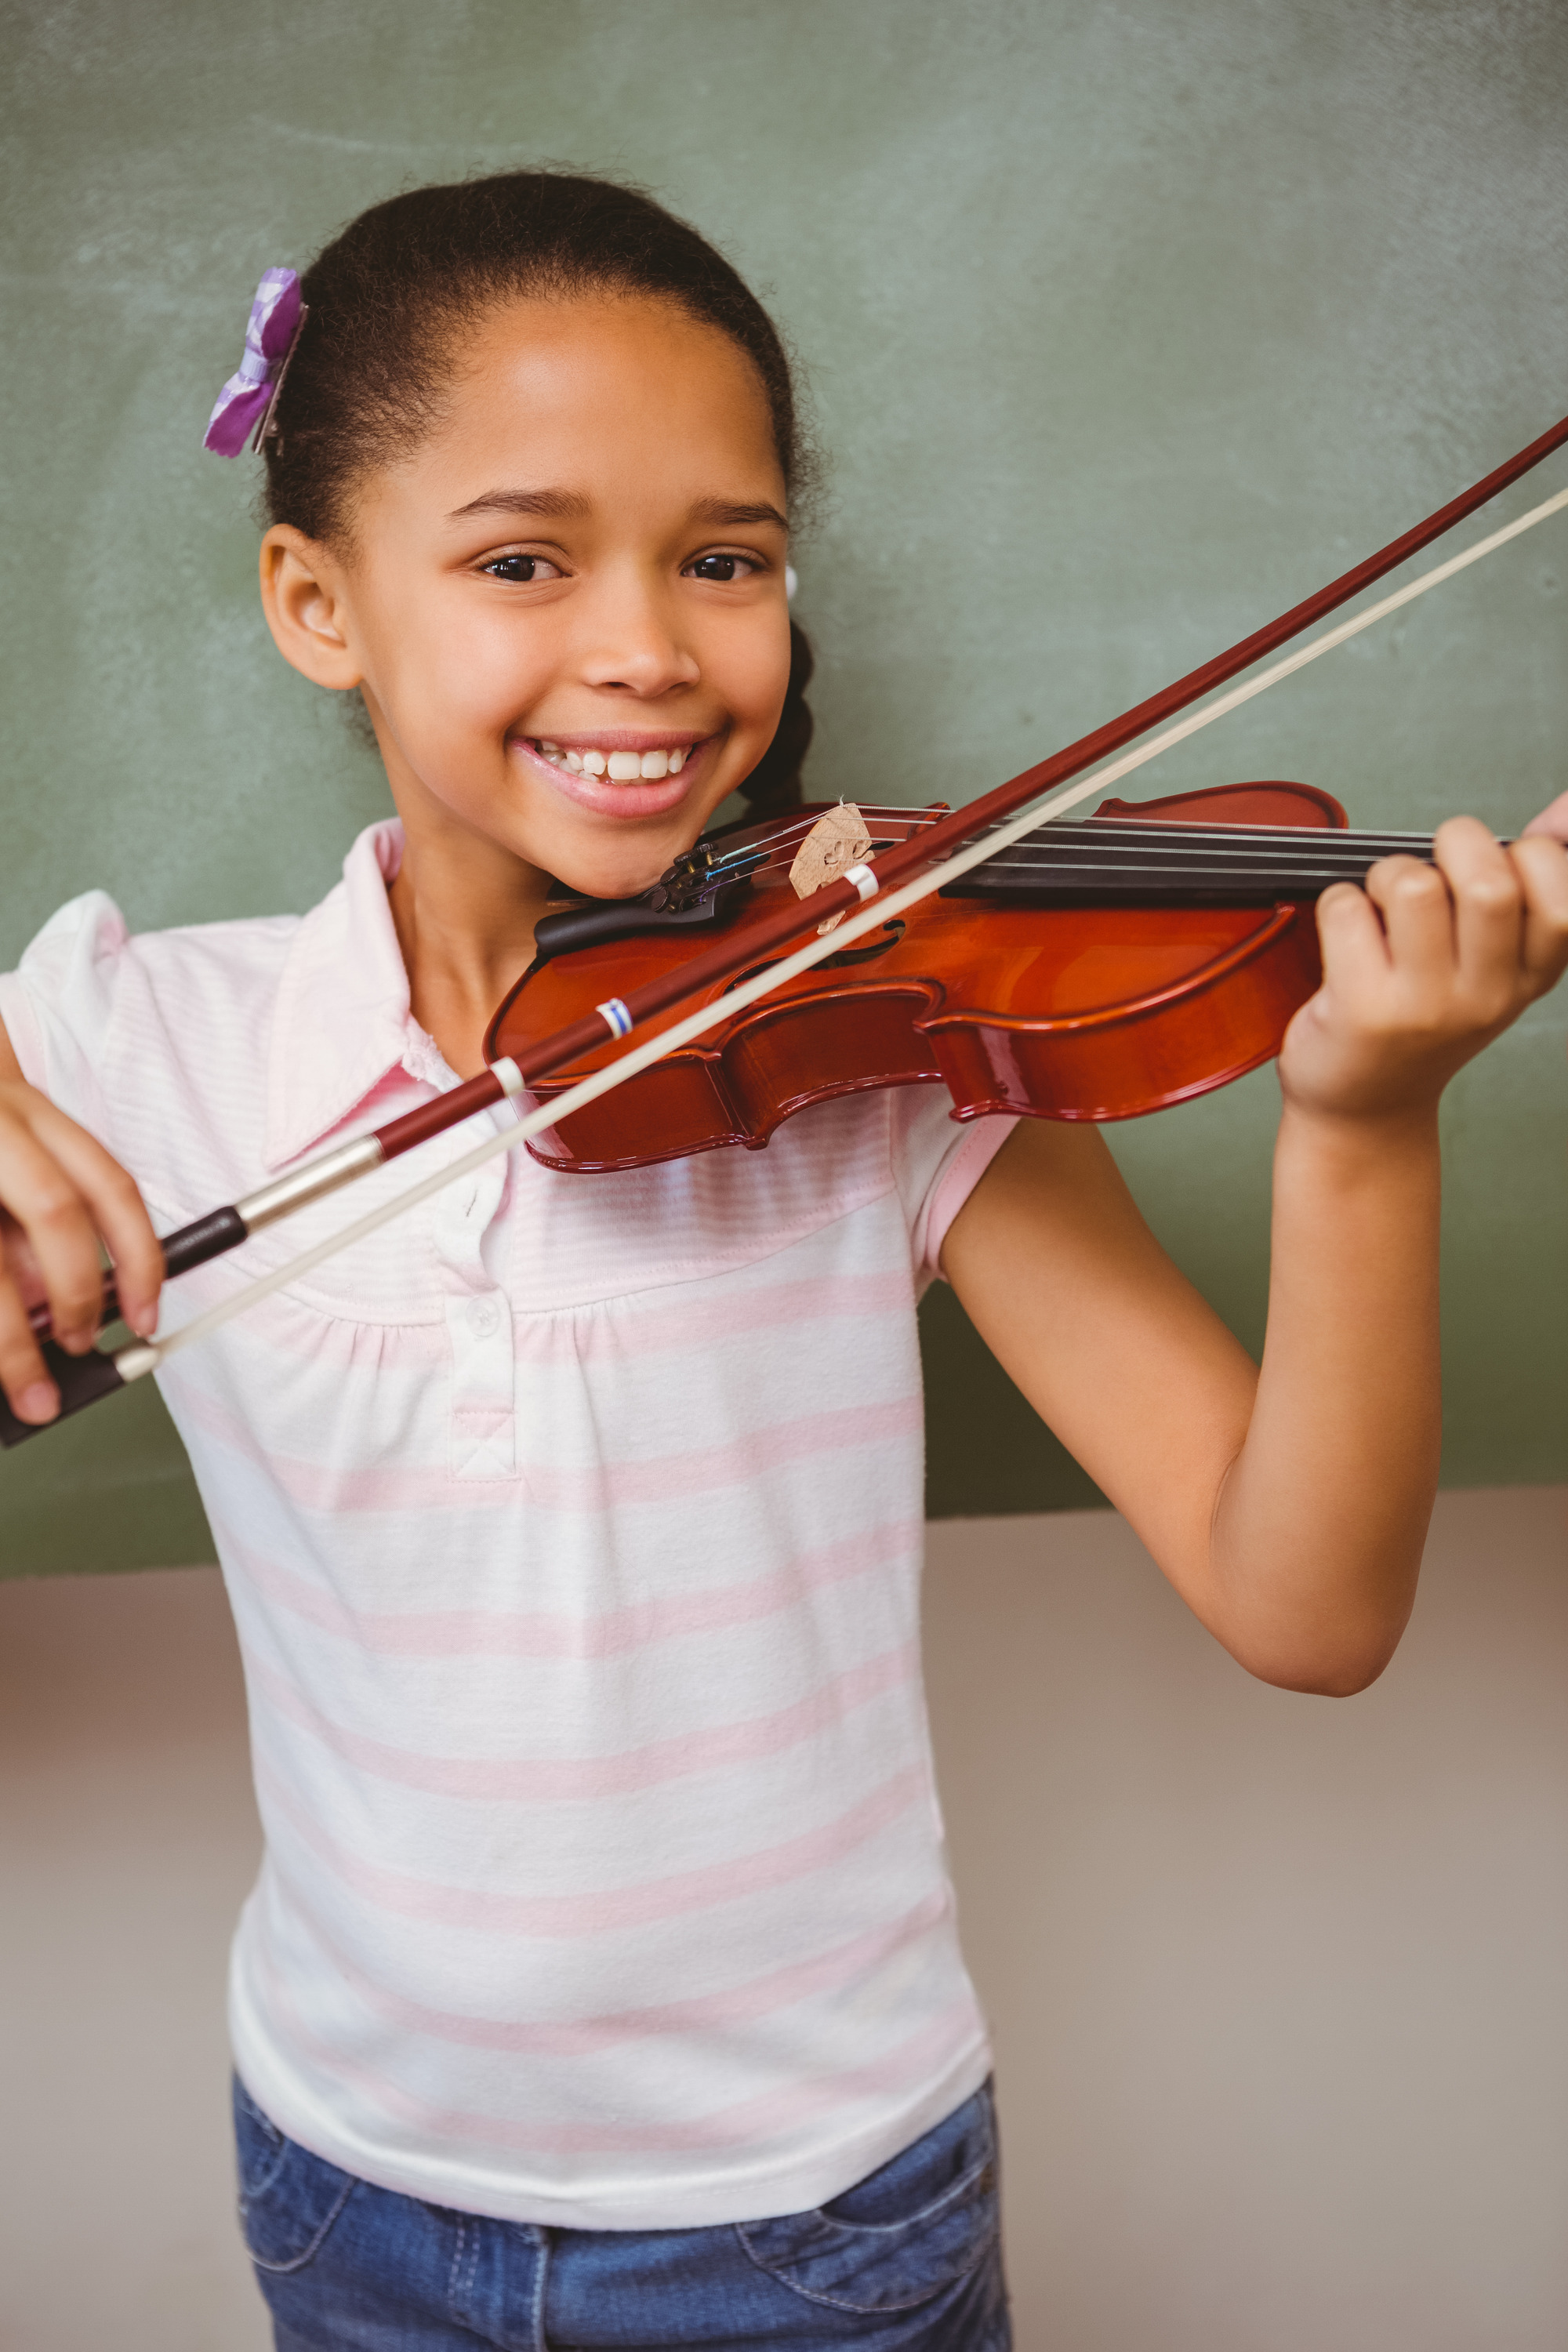 photodune-10553469-portrait-of-cute-little-girl-playing-violin-in-classroom-l.jpg